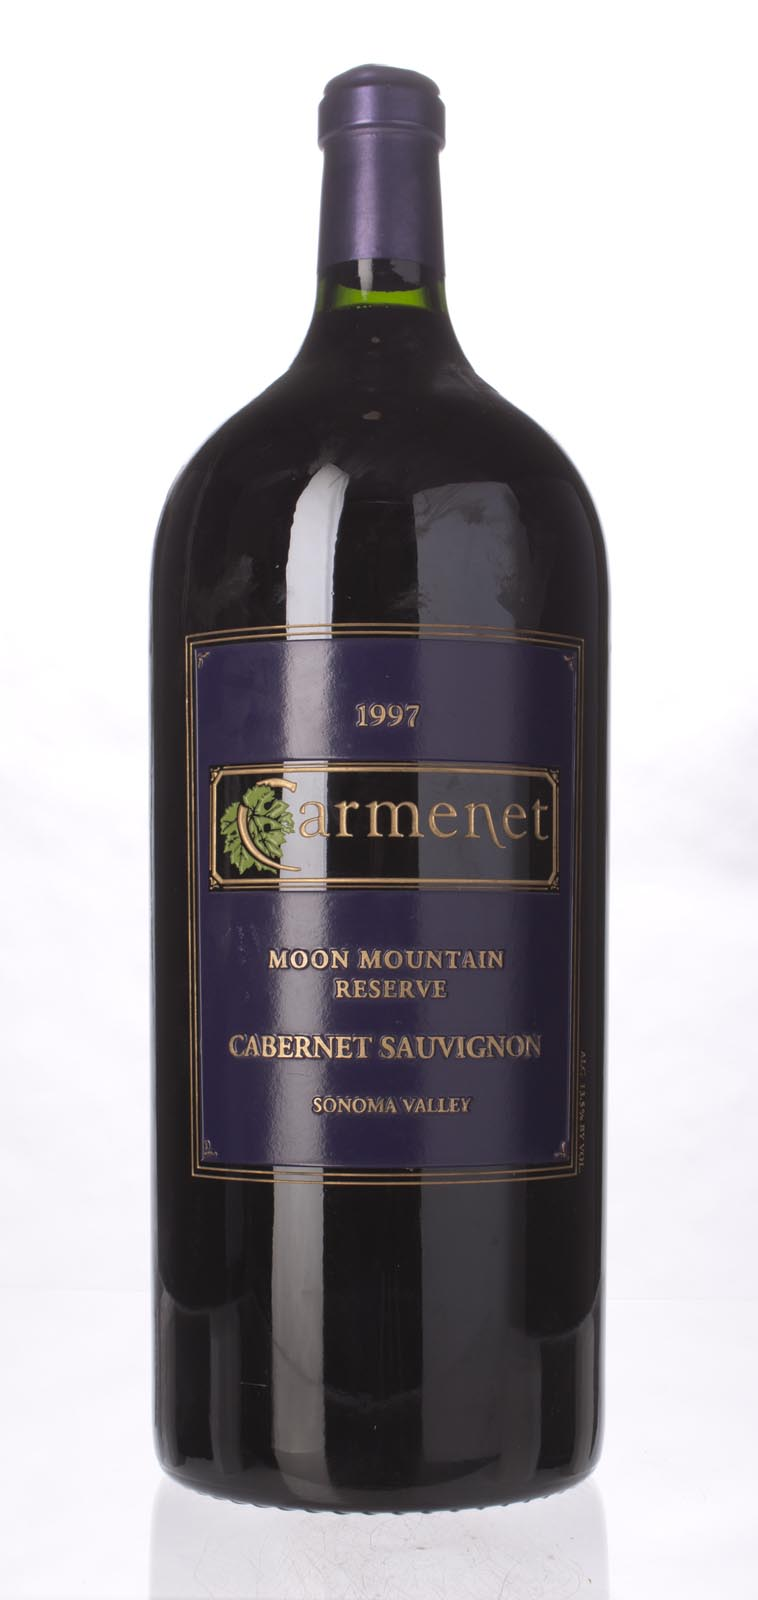 Carmenet Cabernet Sauvignon Moon Mountain Reserve 1997, 6L () from The BPW - Merchants of rare and fine wines.